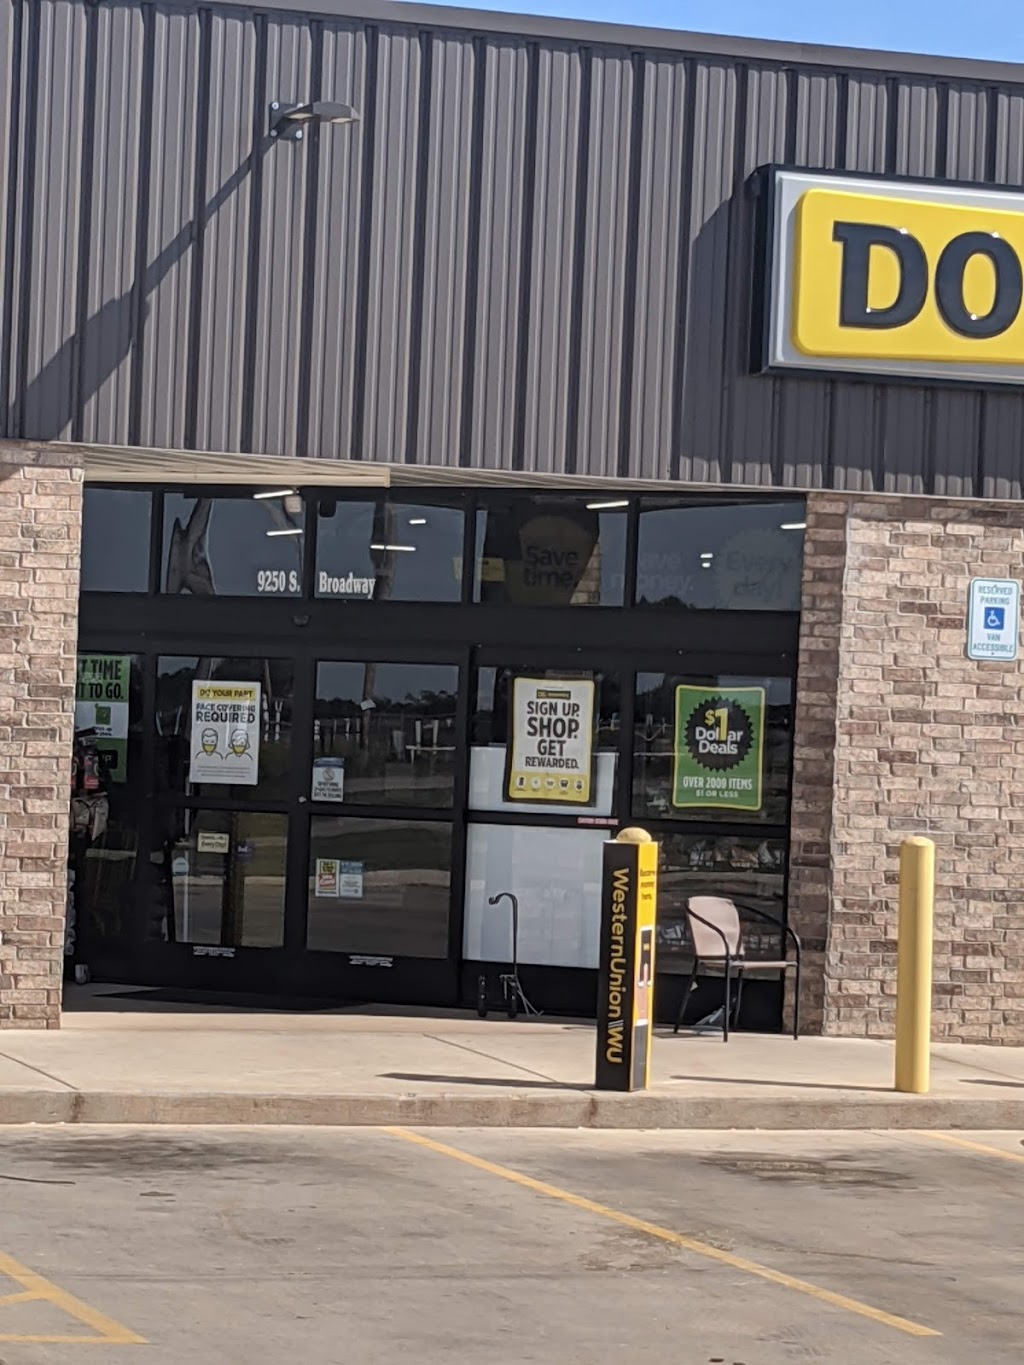 Dollar General - convenience store  | Photo 4 of 9 | Address: 9250 S Broadway, Guthrie, OK 73044, USA | Phone: (405) 260-8360